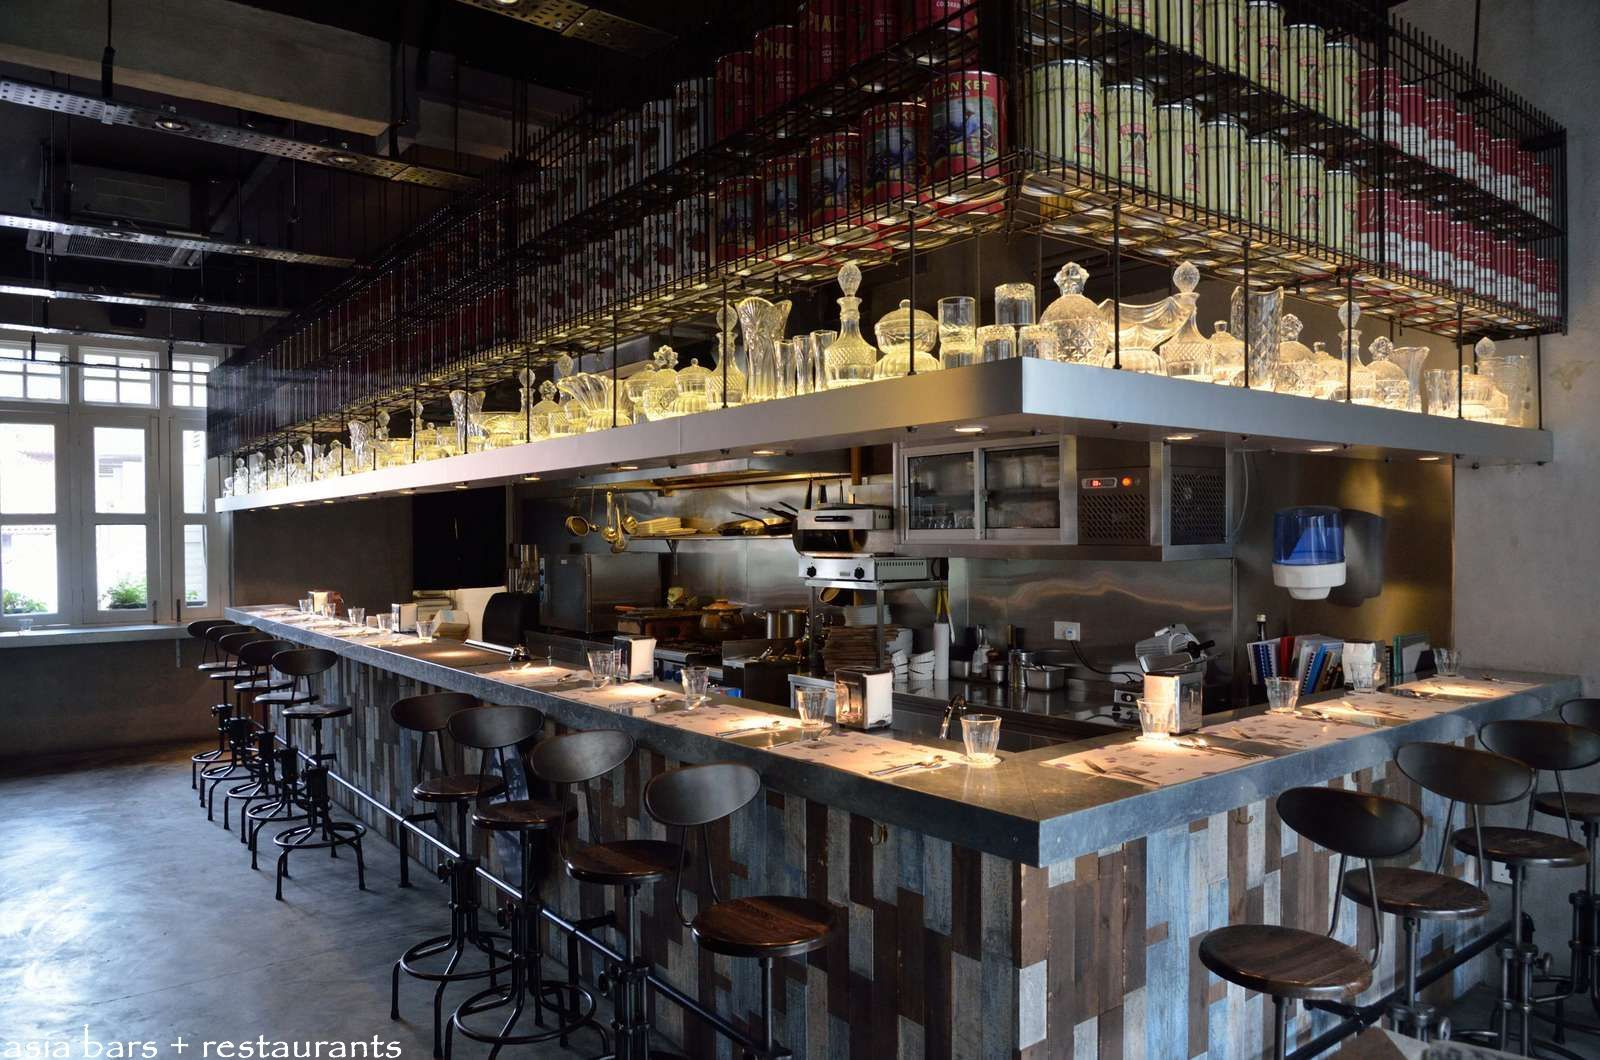 Kitchen Dining At The Lolla Open Kitchen A Bar Menu A Kitchen Application Cafe Interior Design Kitchen Design Open Cafe Interior